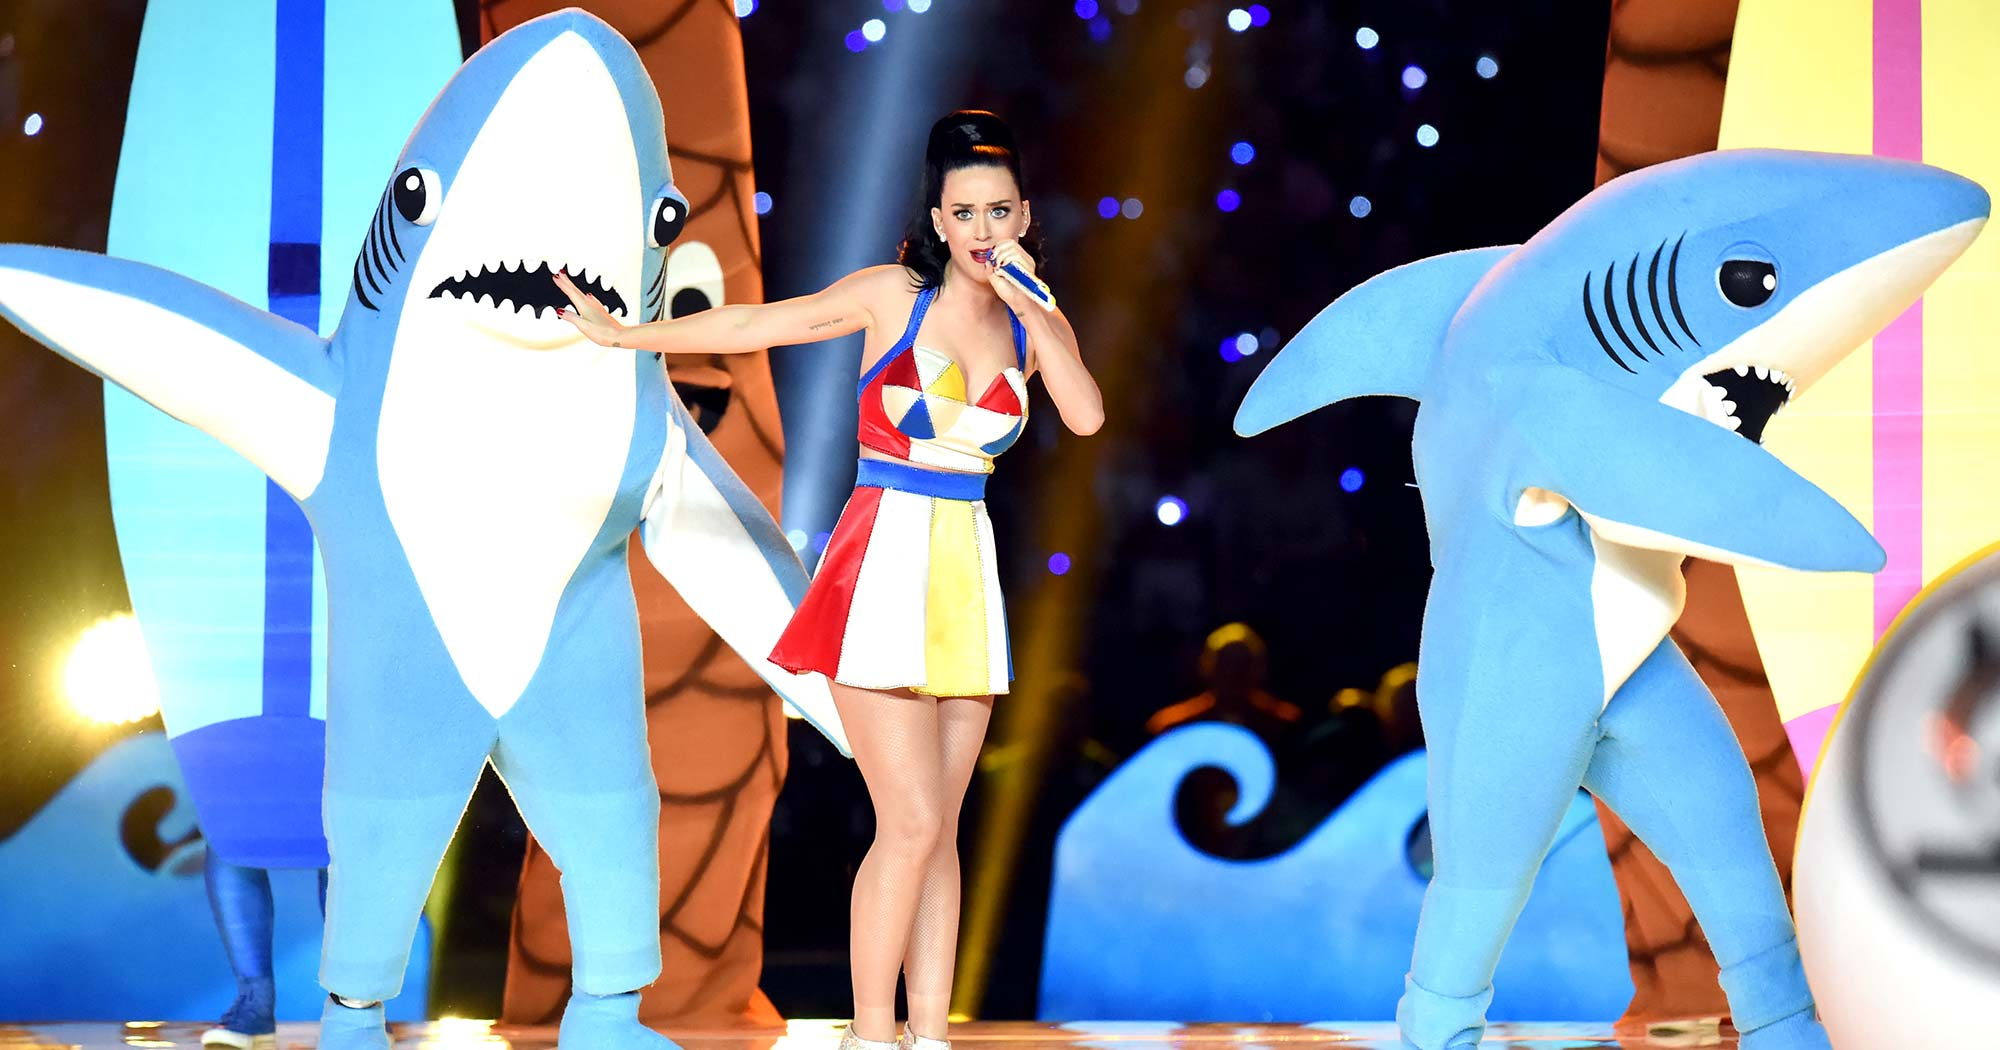 The Most Iconic Pop Culture GIFs Of 2015